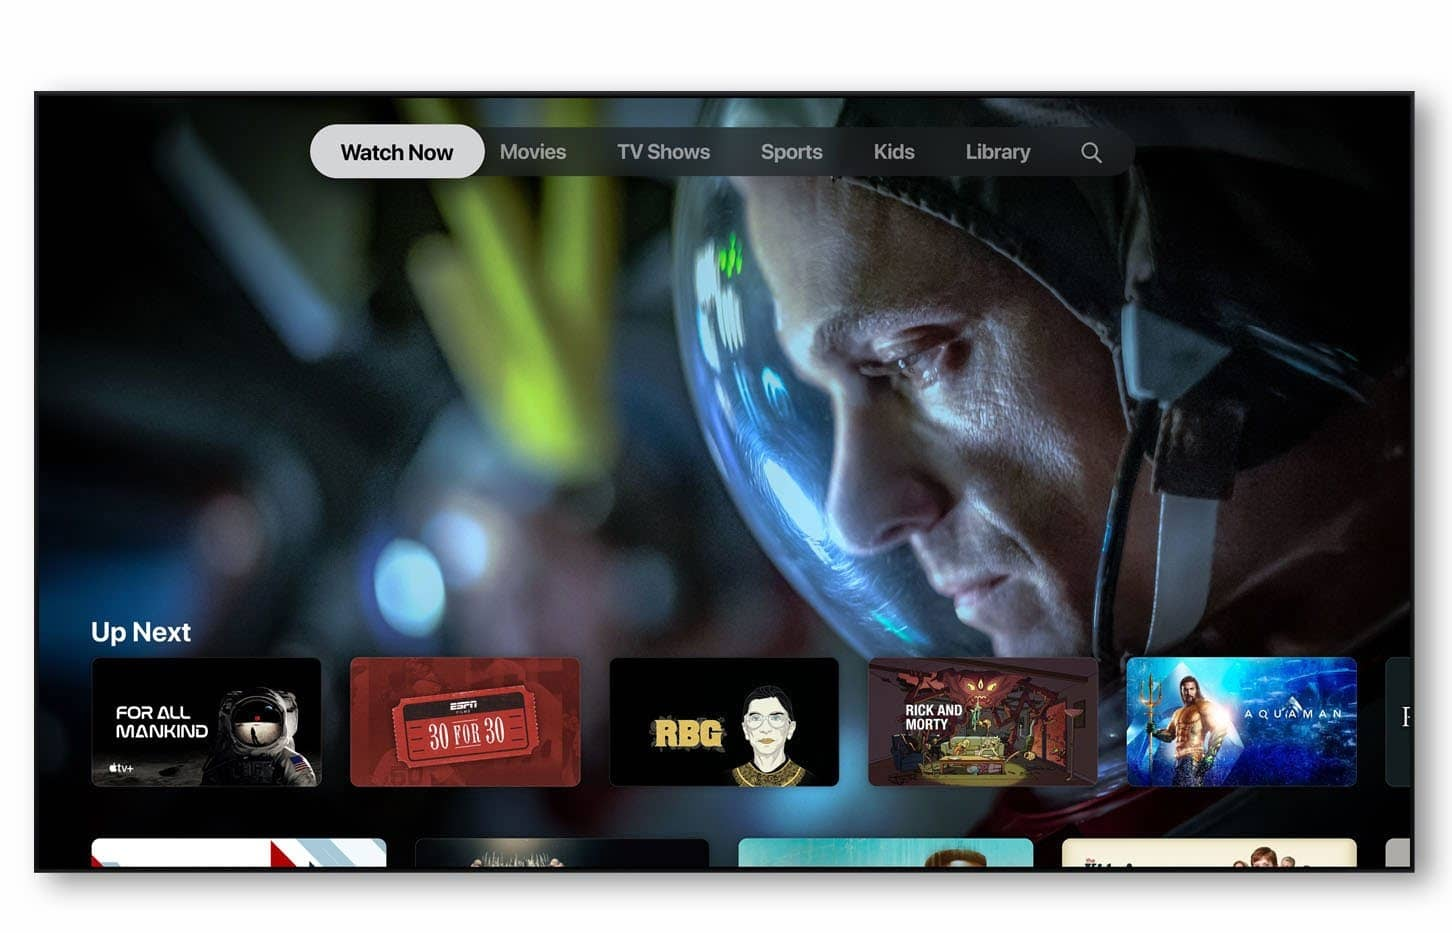 Apple media sharing limits explained and why you should use Plex instead